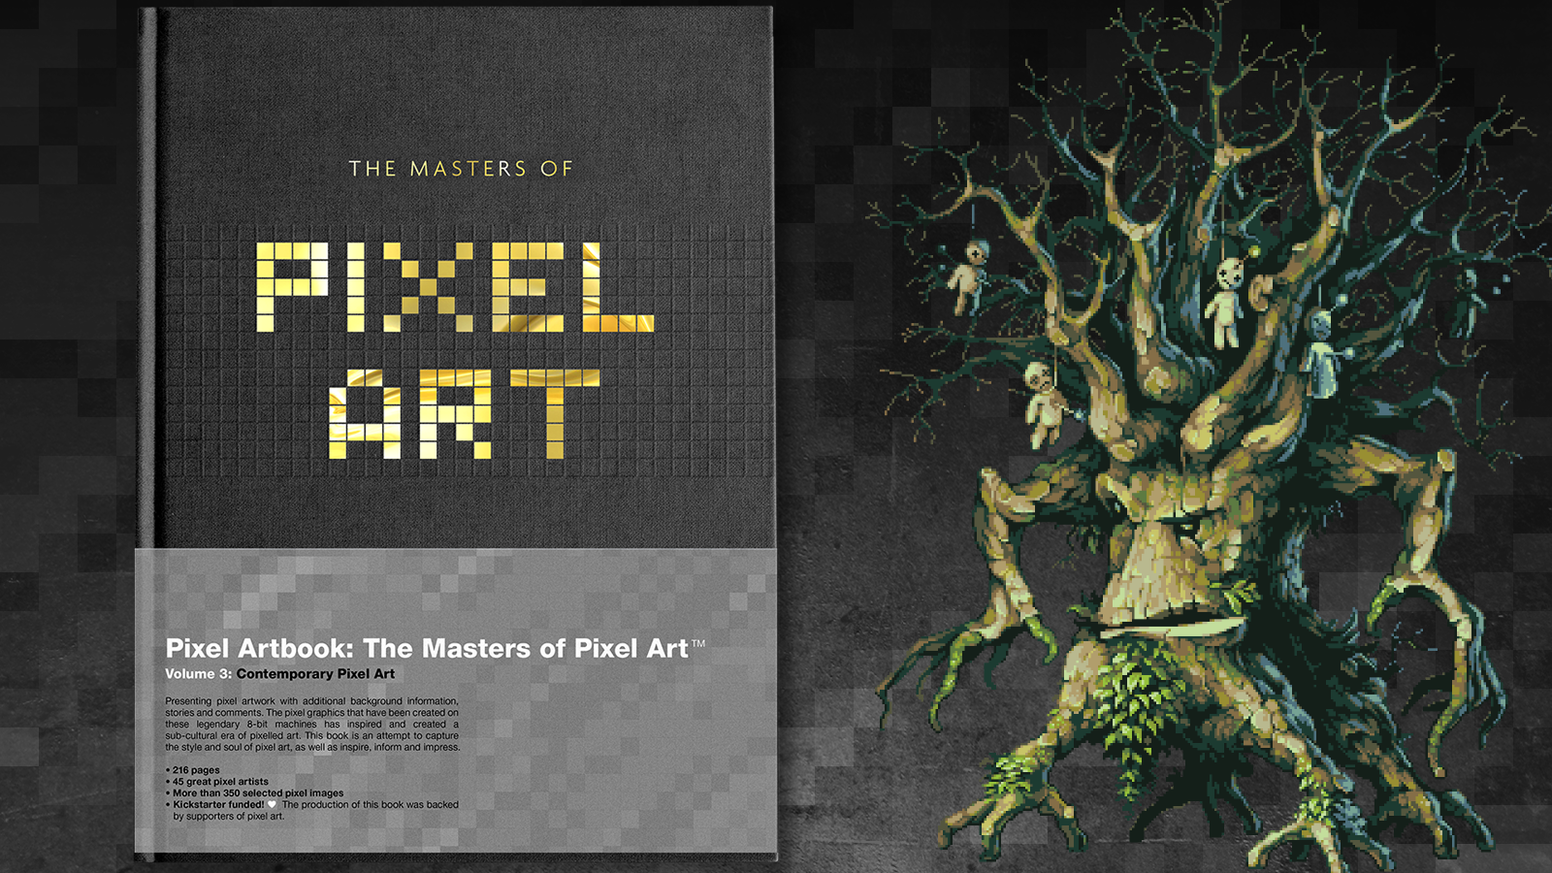 The third pixel art book - featuring some of the best contemporary pixel art from the next generation of artists.